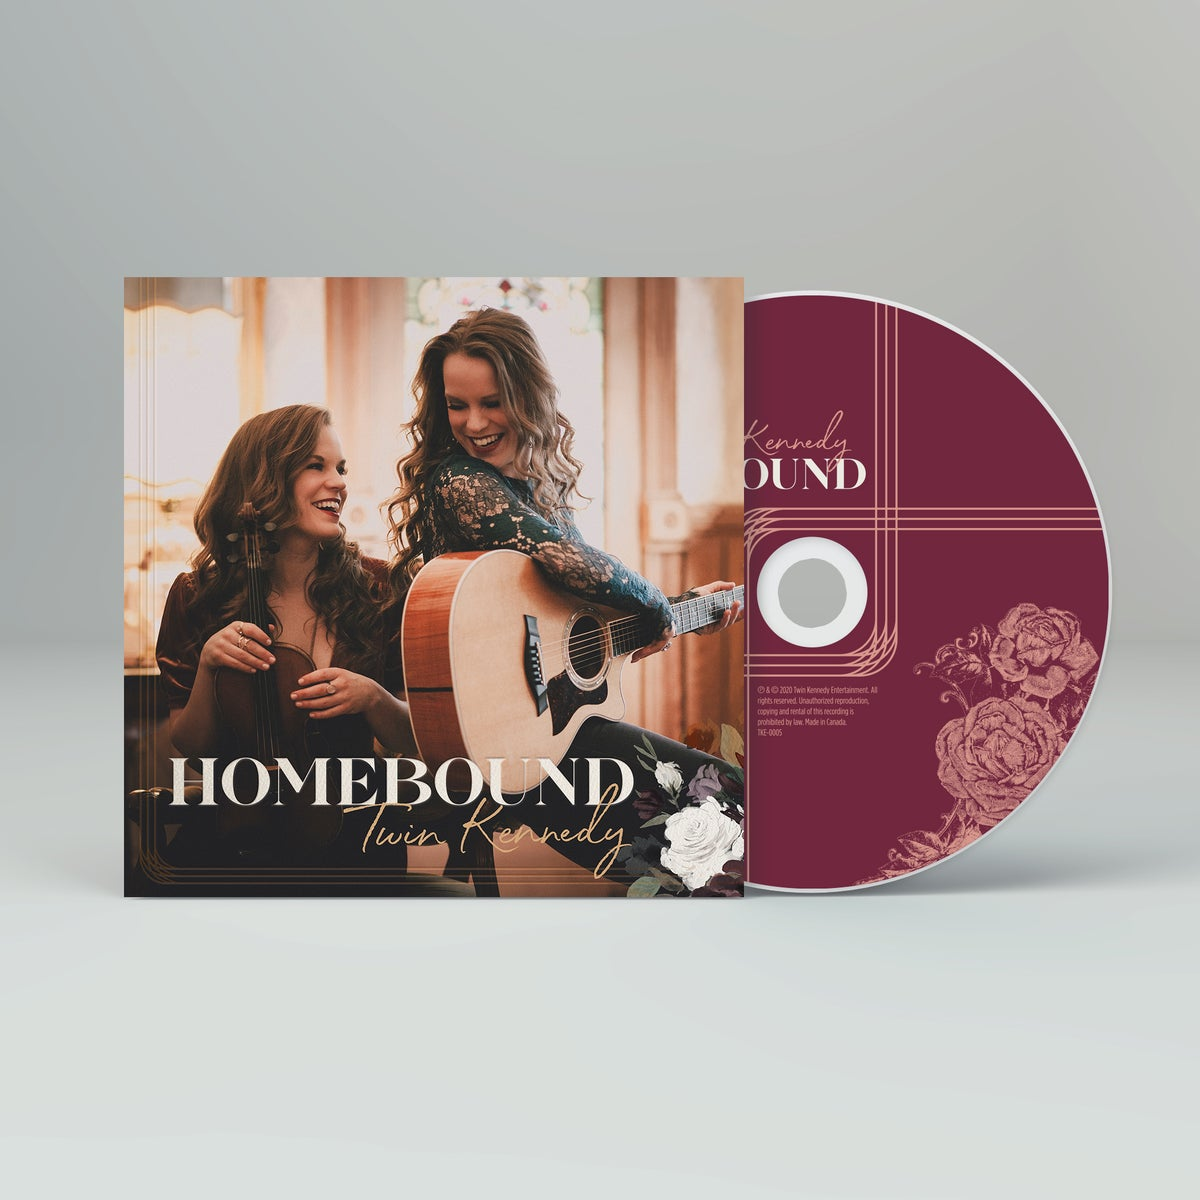 Homebound EP Package!